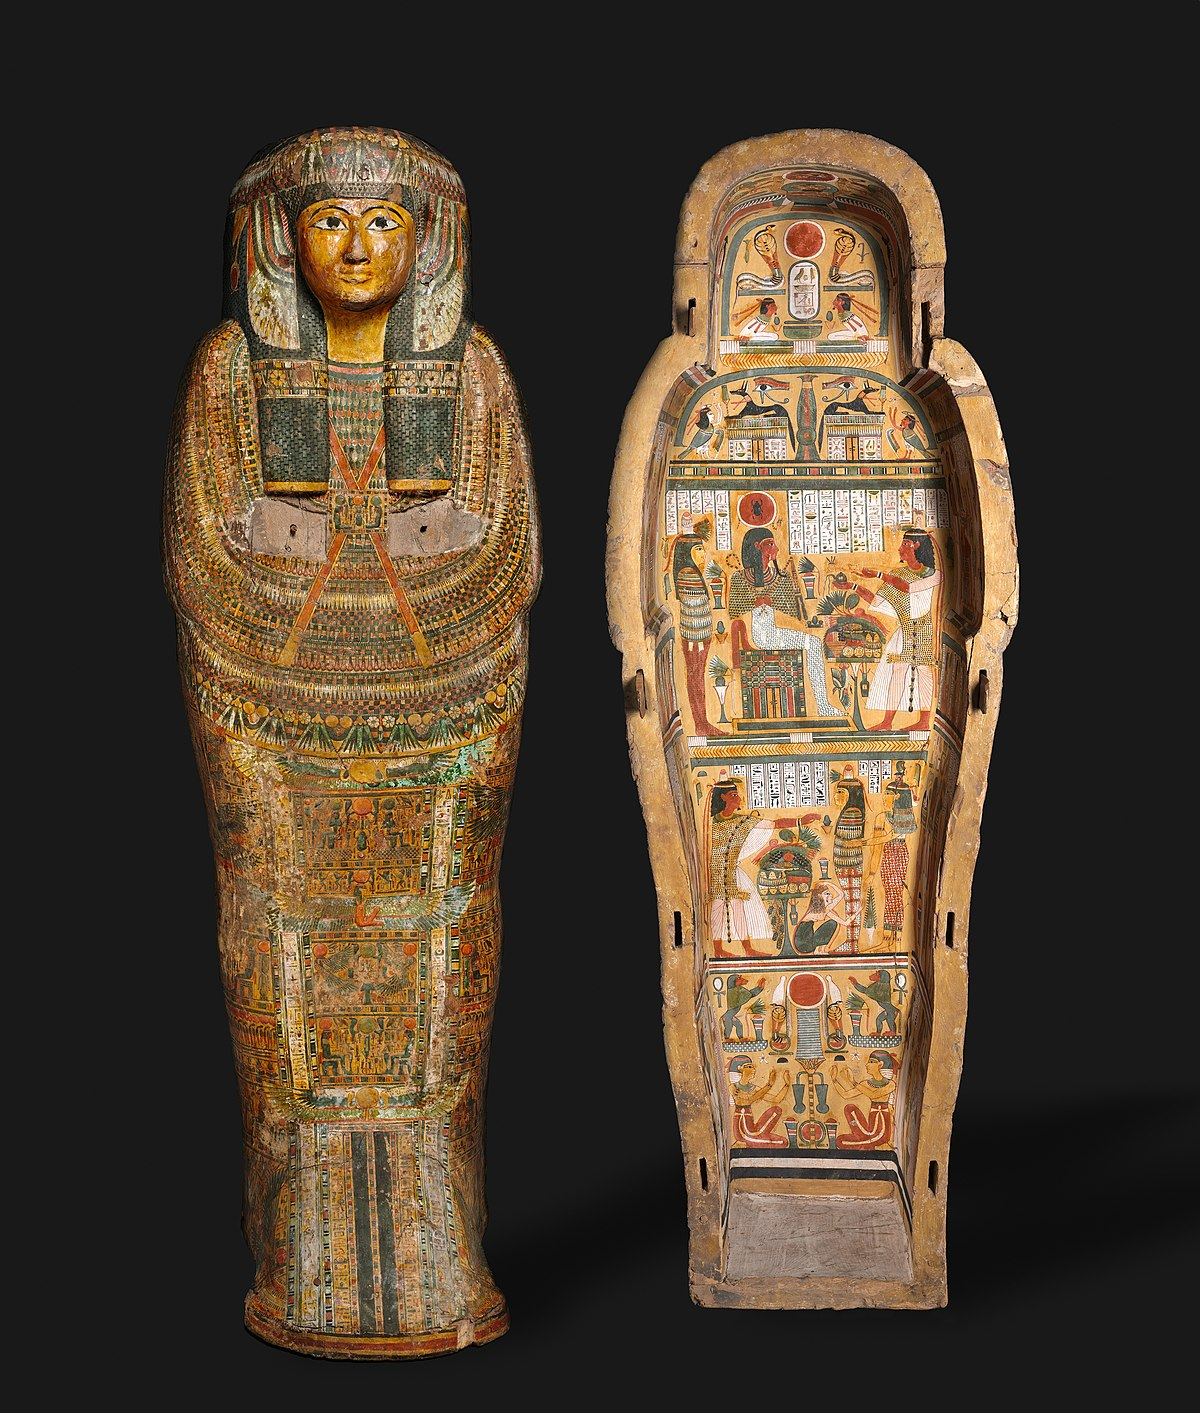 Gothic Berlin Sarcophagus - Wikipedia